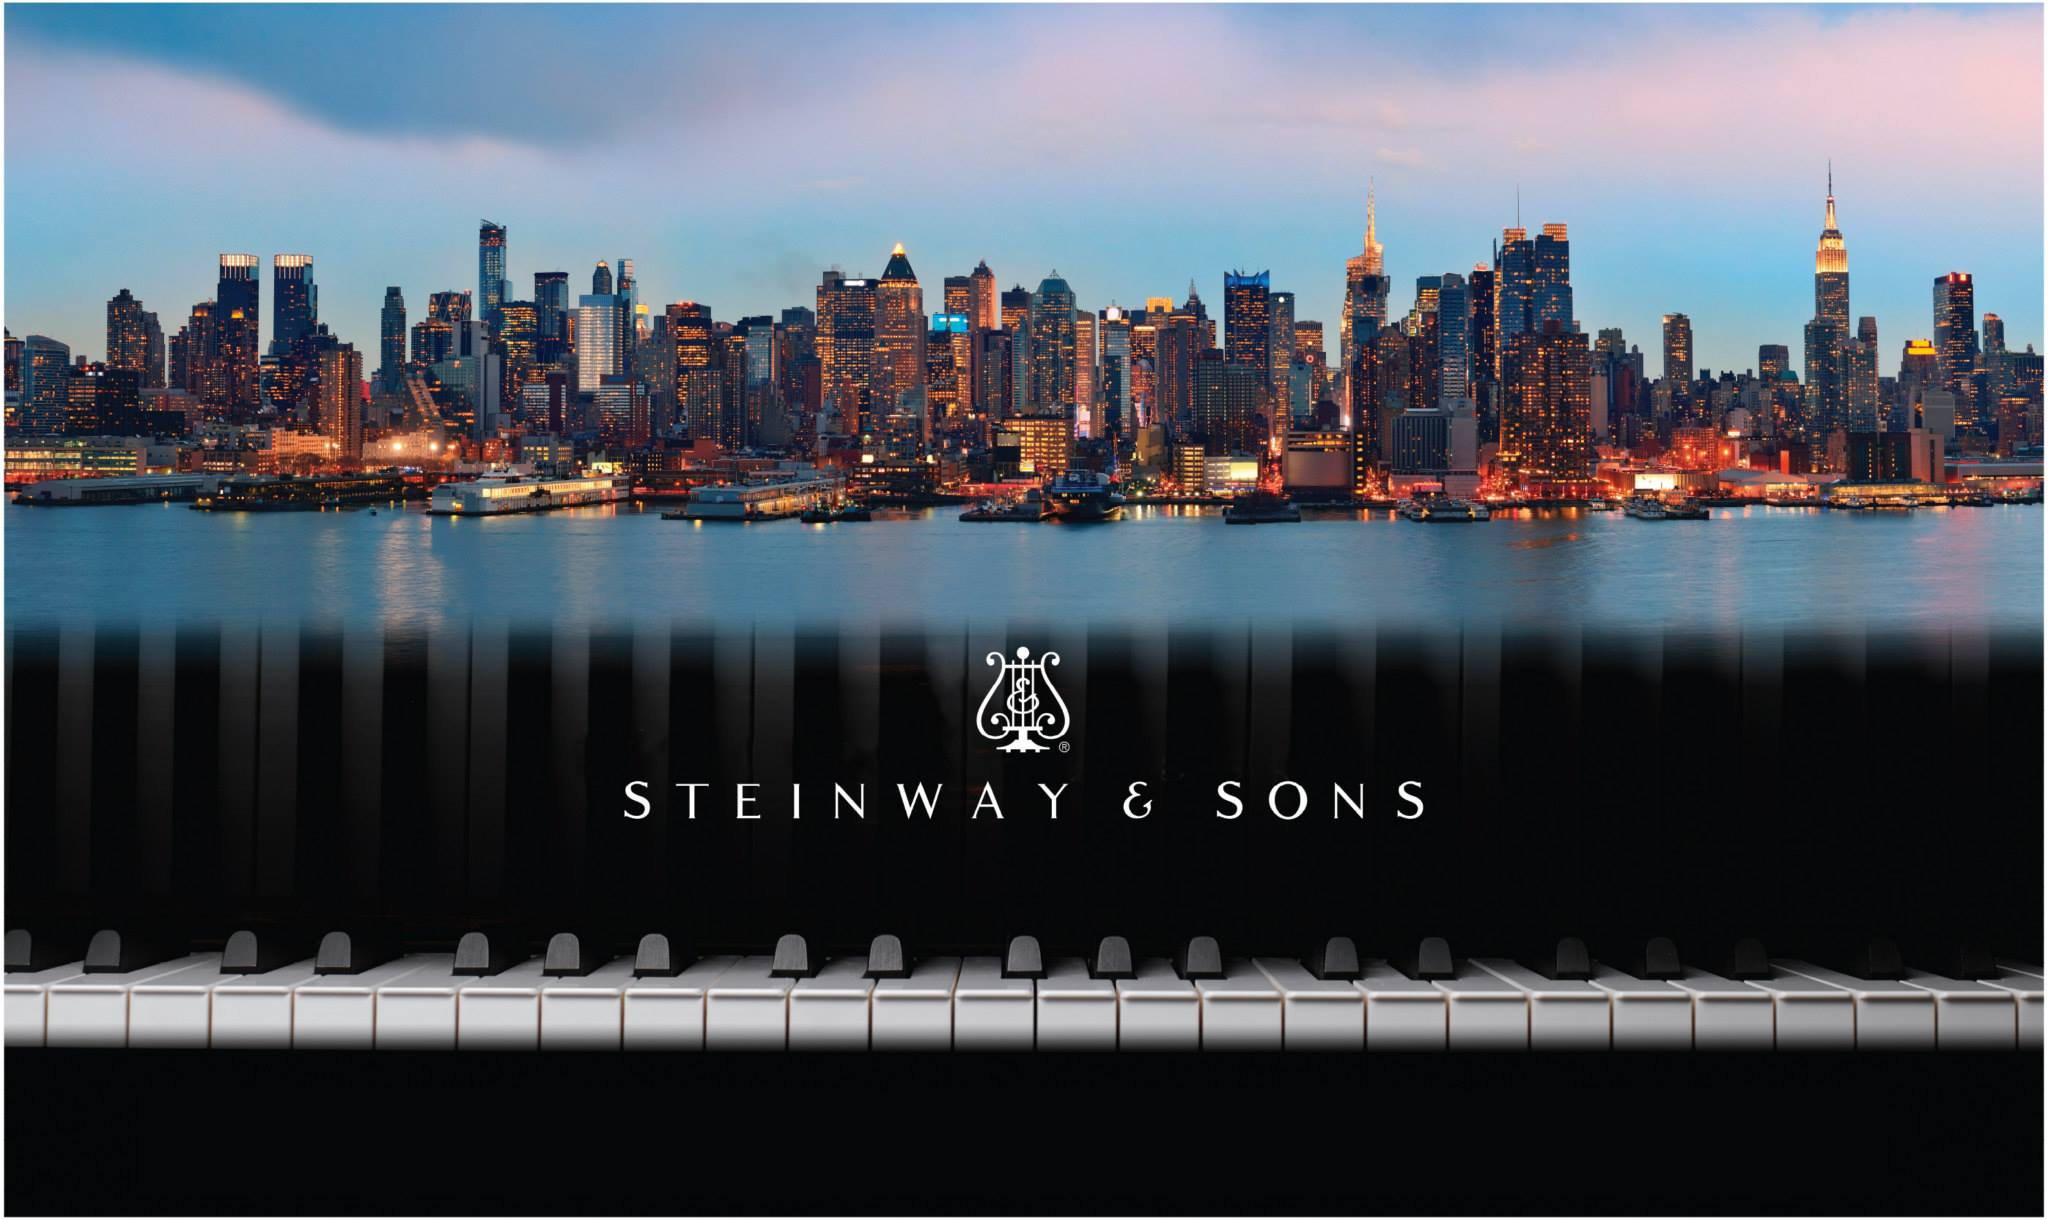 steinway son Heinrich engelhardt steinweg, a cabinetmaker and piano maker from seesen, germany, emigrated with his family to the united states in 1850, and established steinway & sons in 1853.